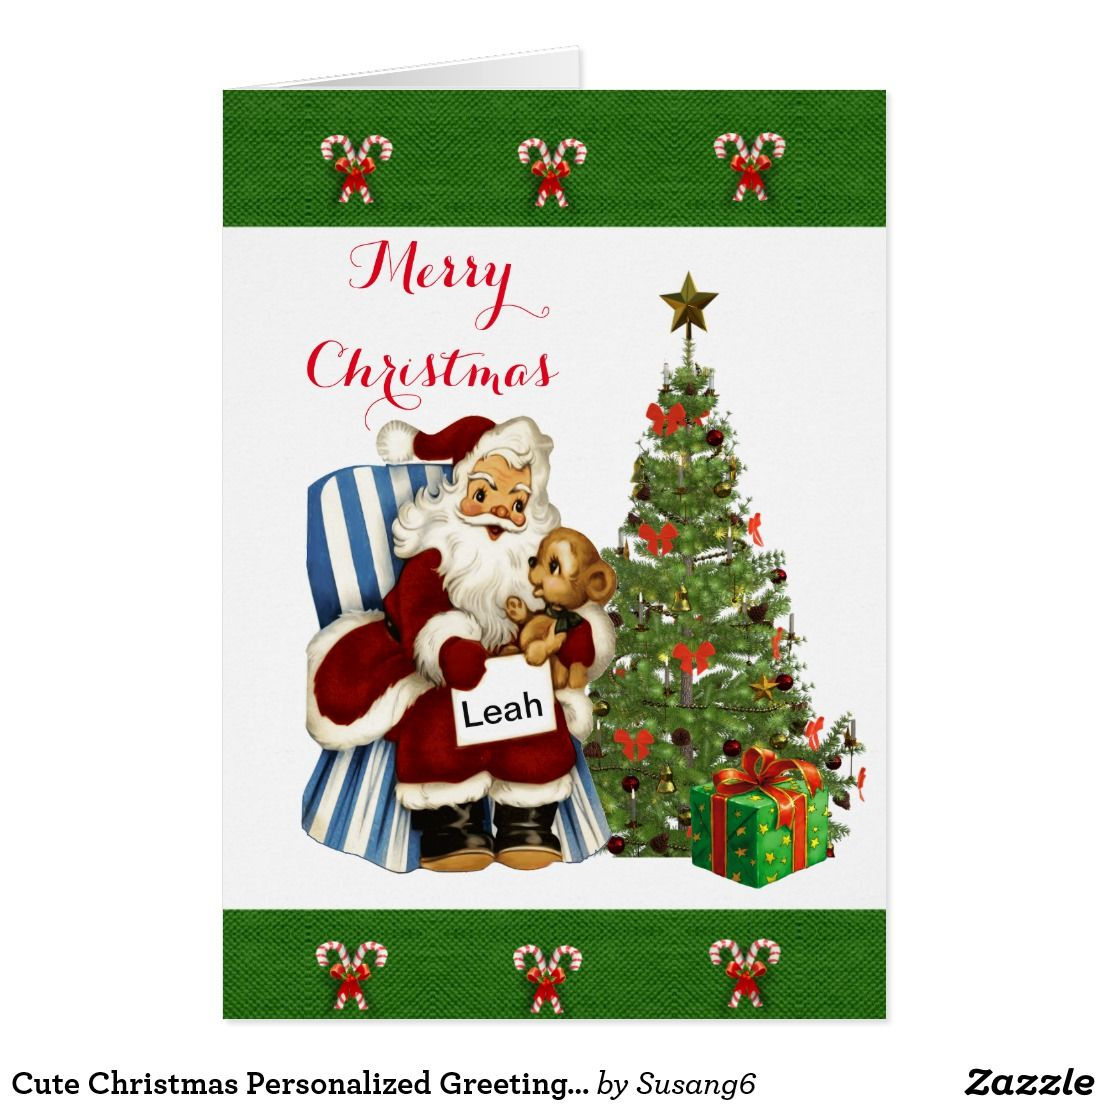 Cute Christmas Personalized Greeting Card For Kids